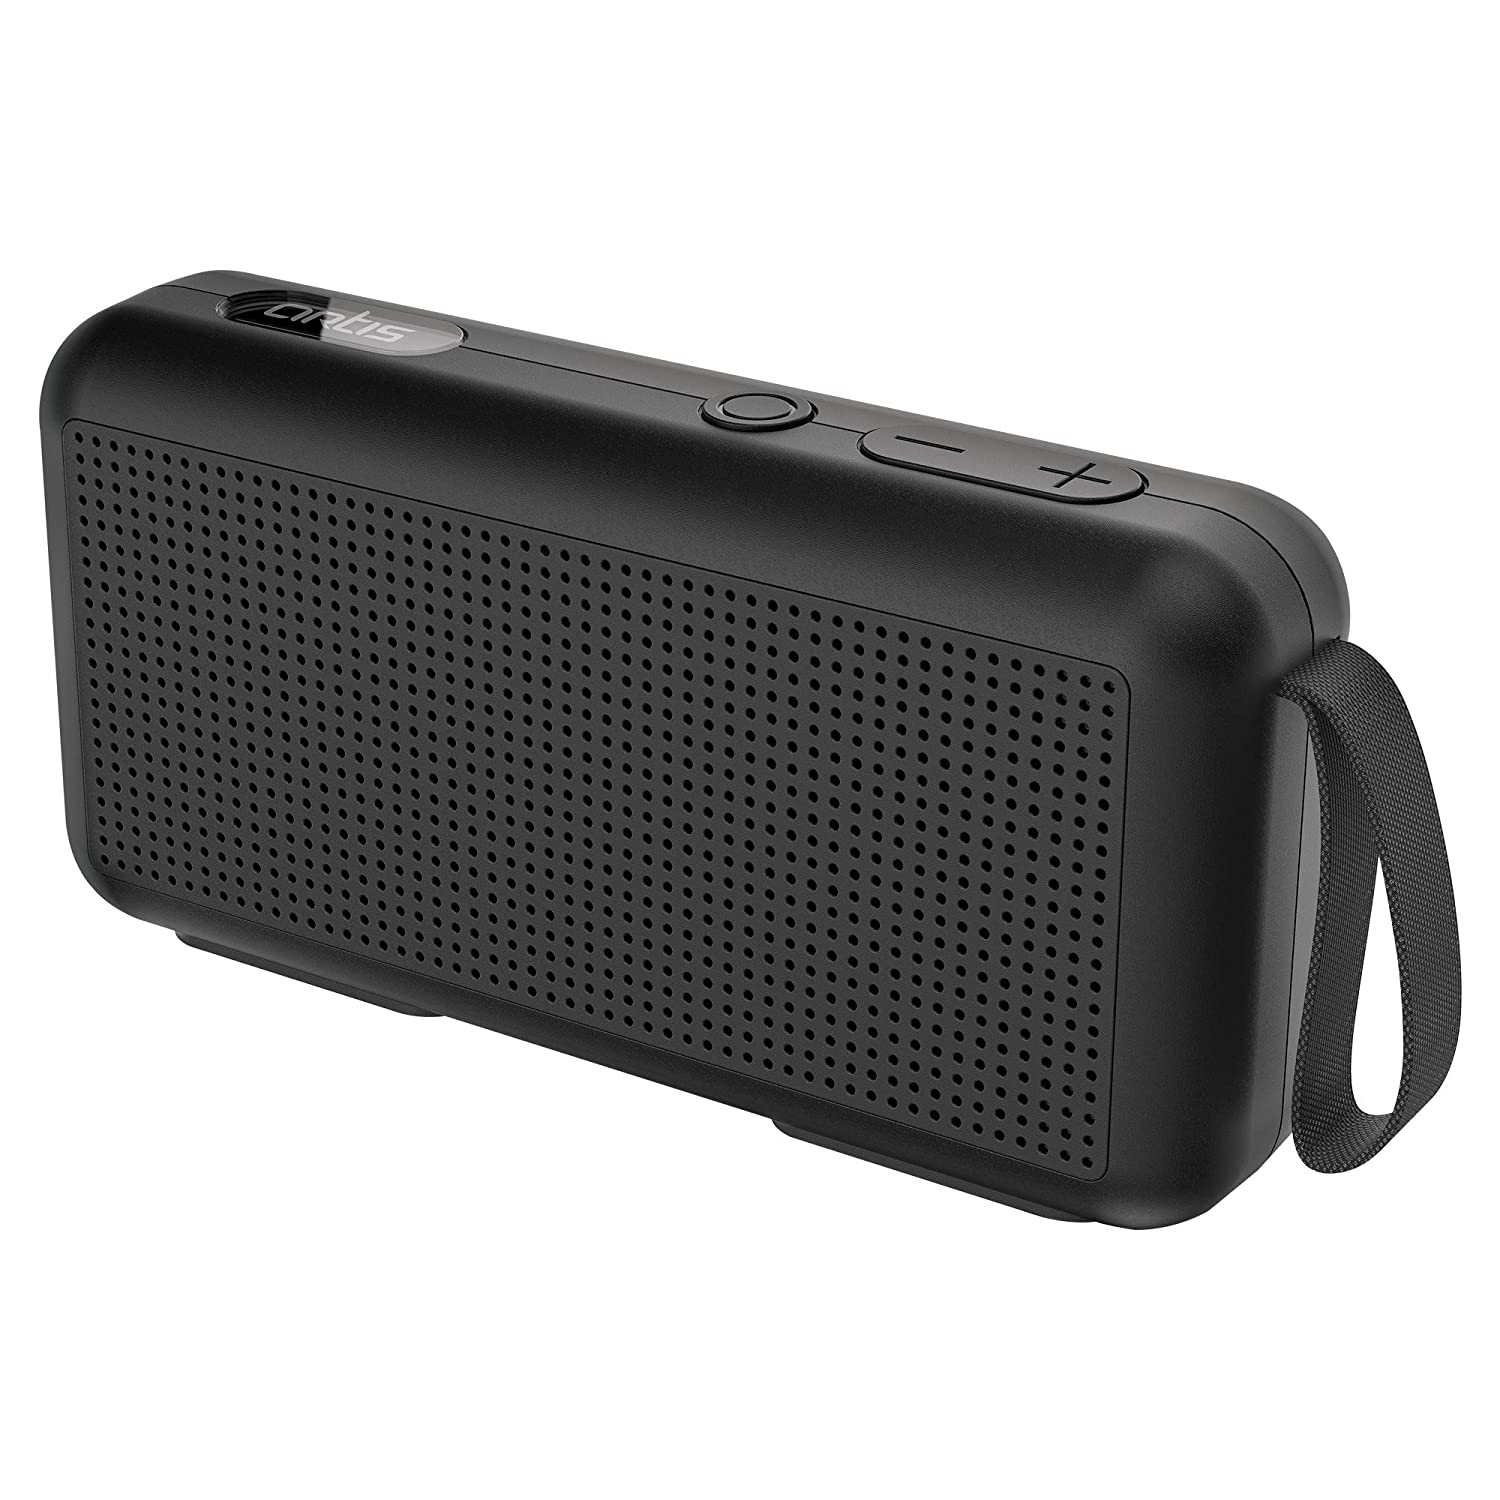 Artis BT05 Portable Wireless Bluetooth Speaker